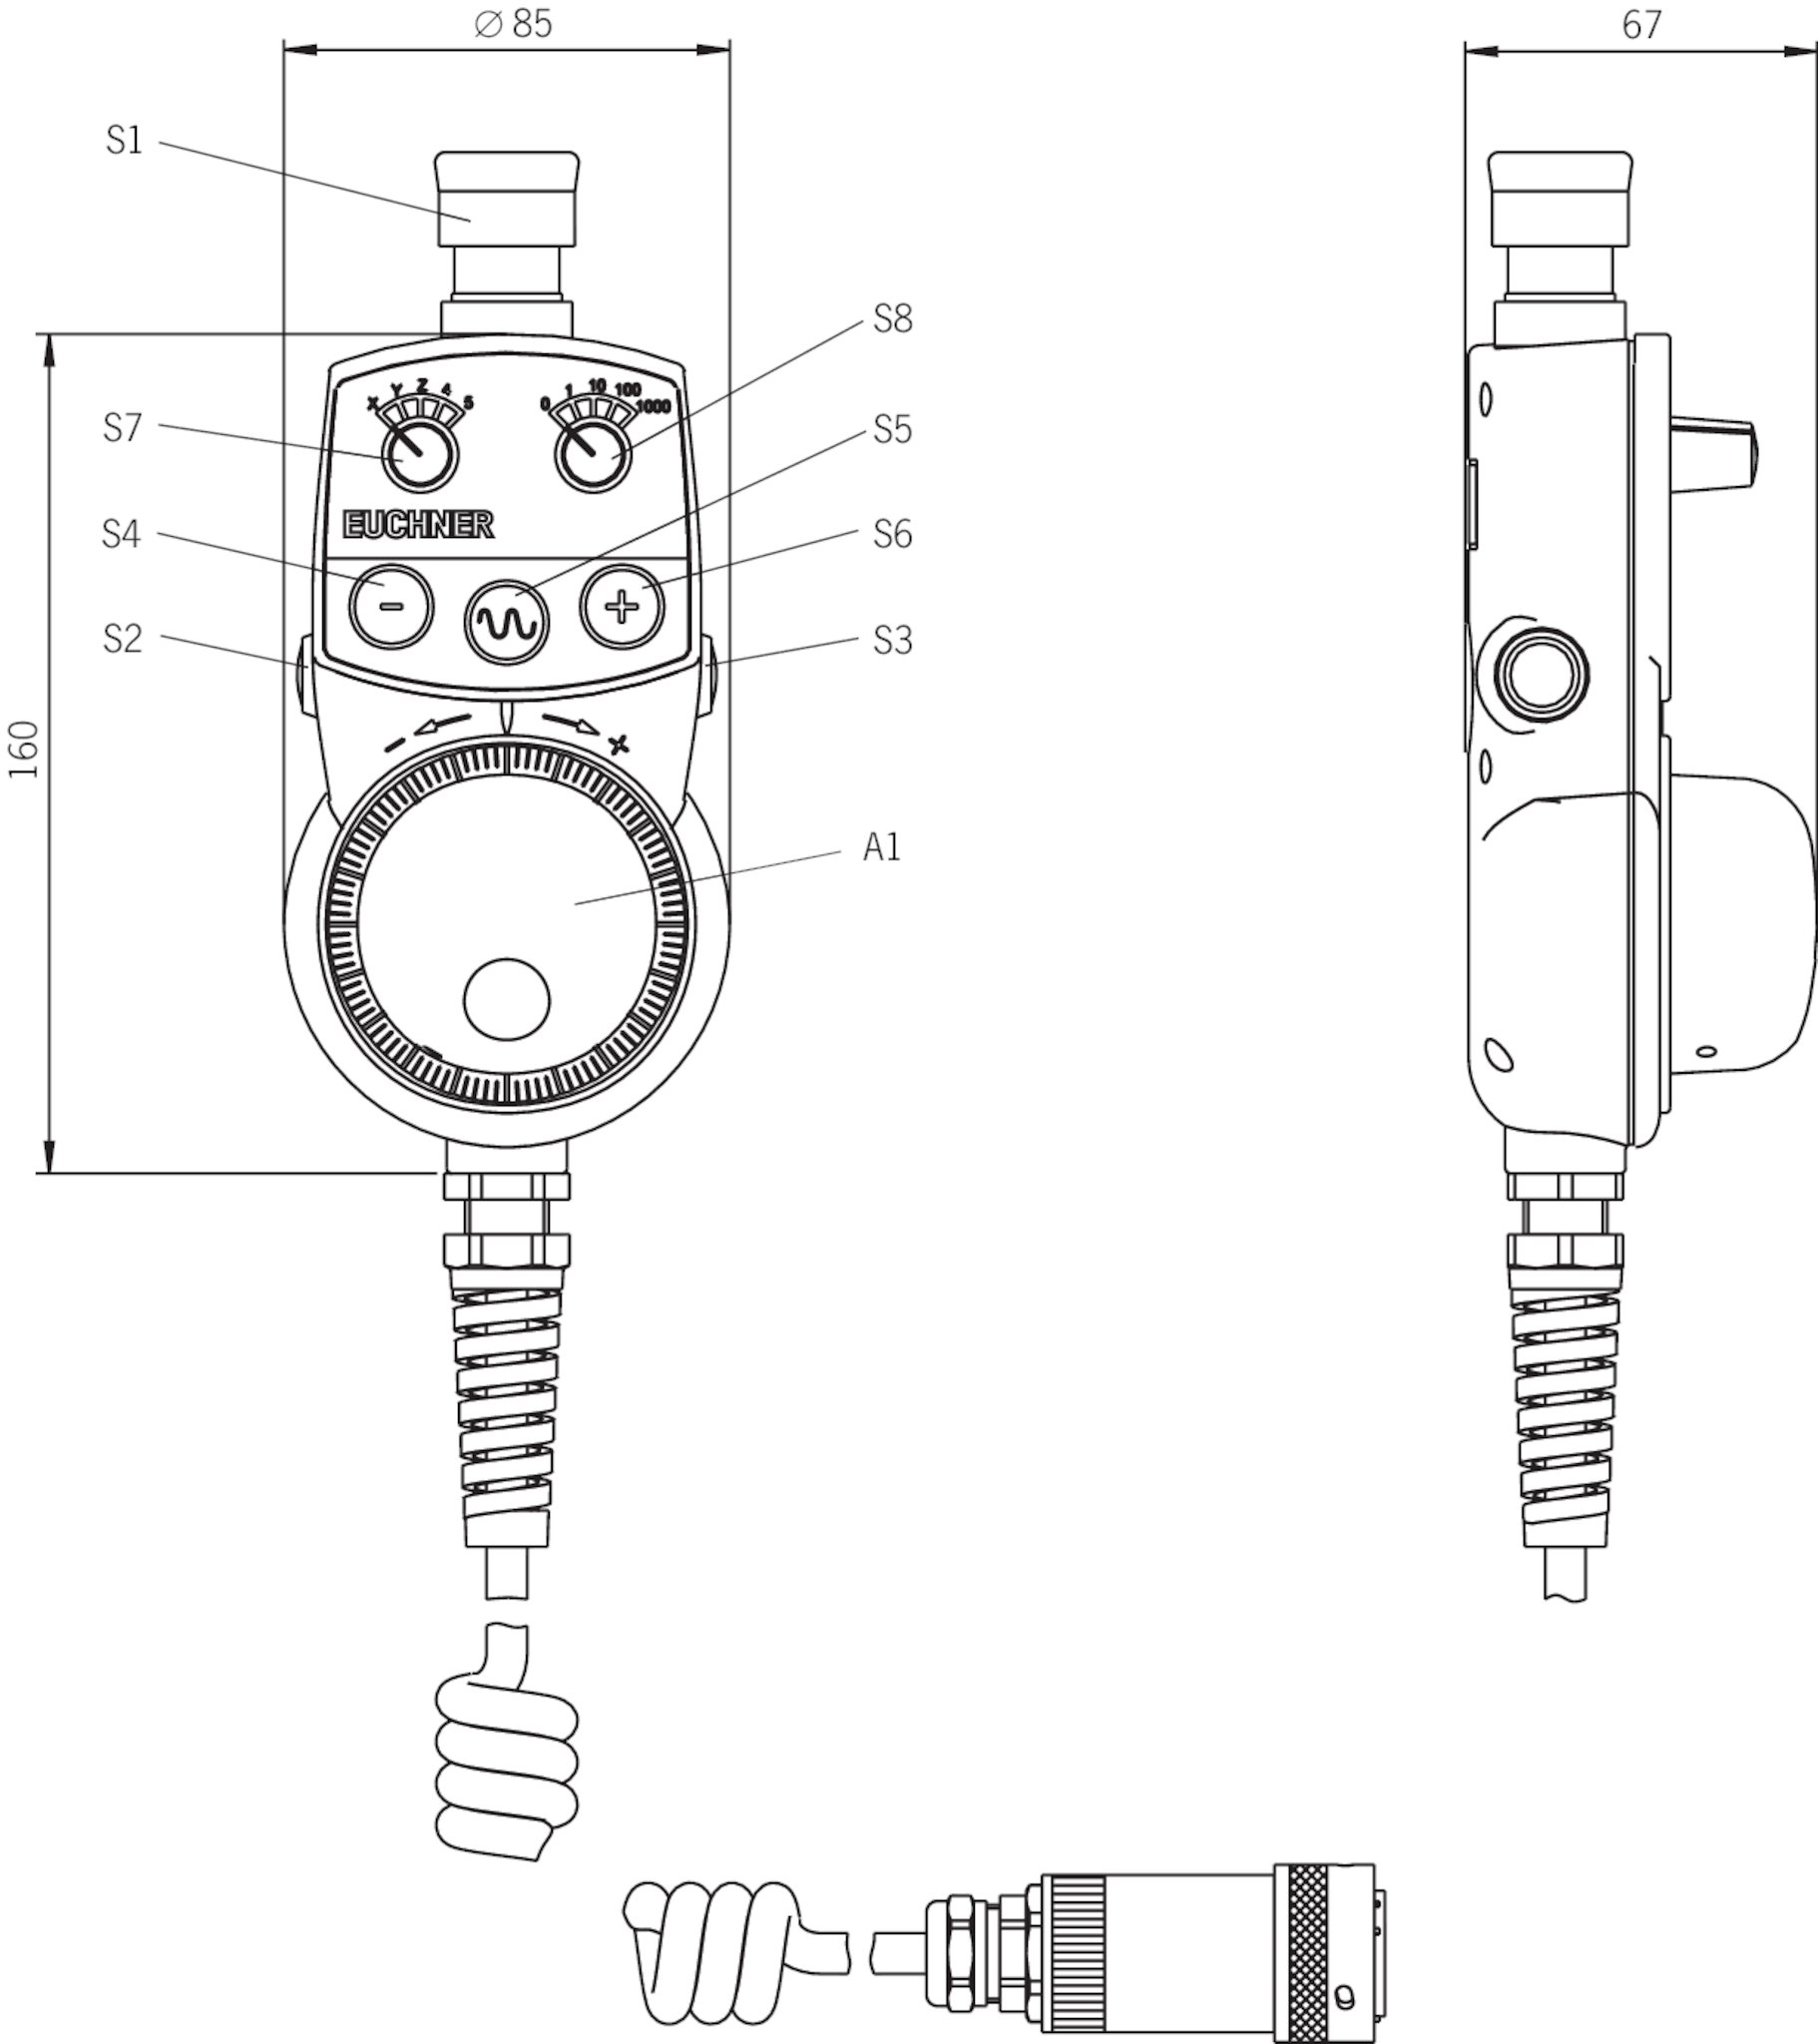 HBA-079827 | EUCHNER – More than safety. on pendant controllers diagram, pendant cable, pendant switch, pendant speaker,